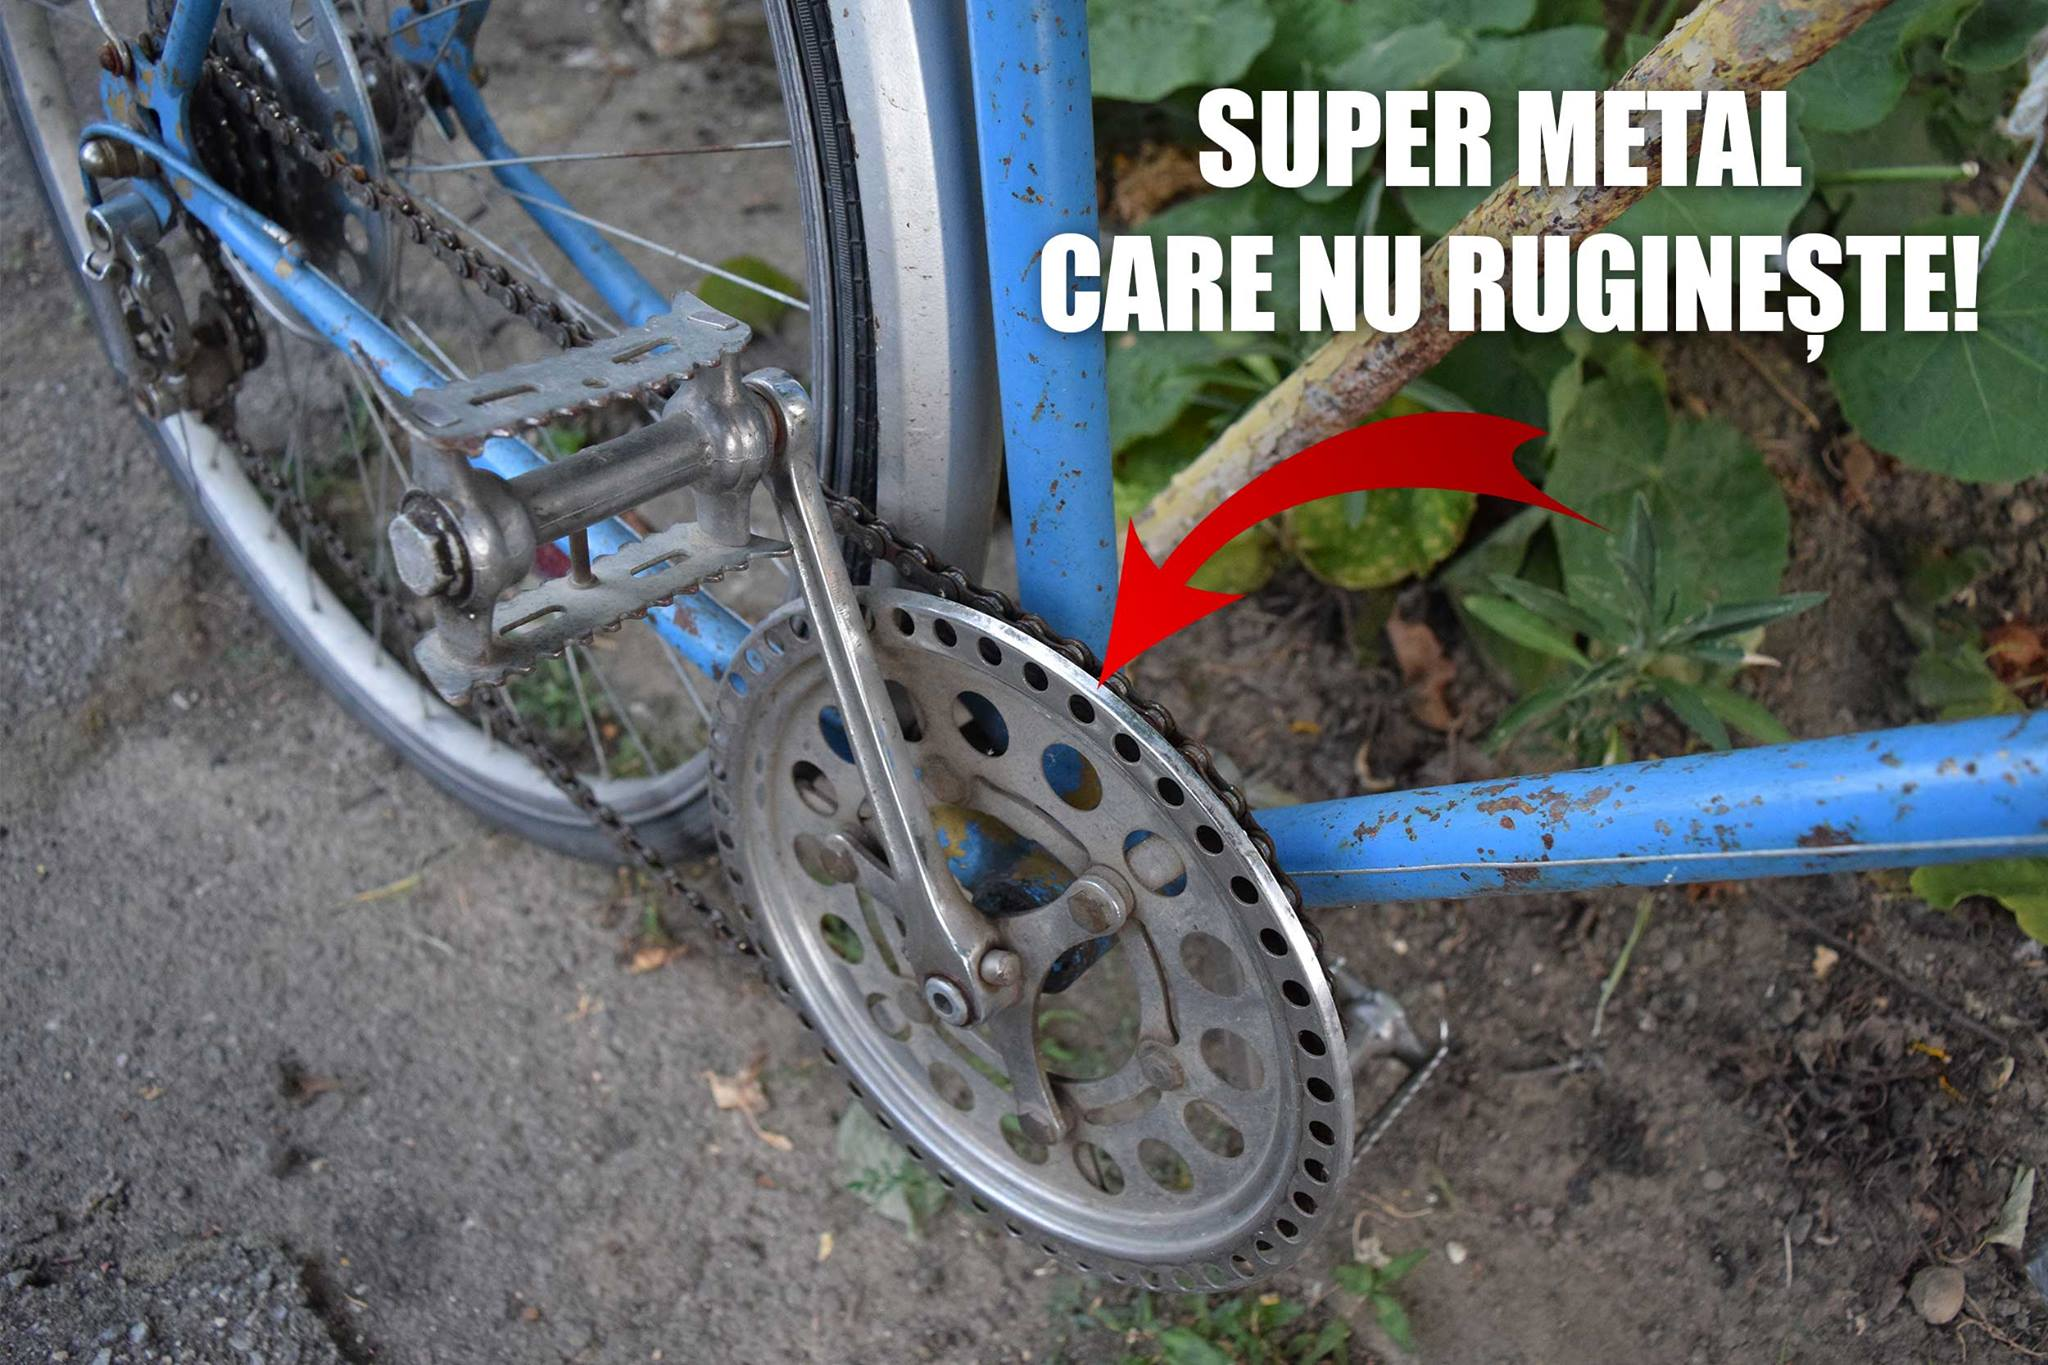 Bicicleta super metal care nu rugineste - Toma Grozavescu